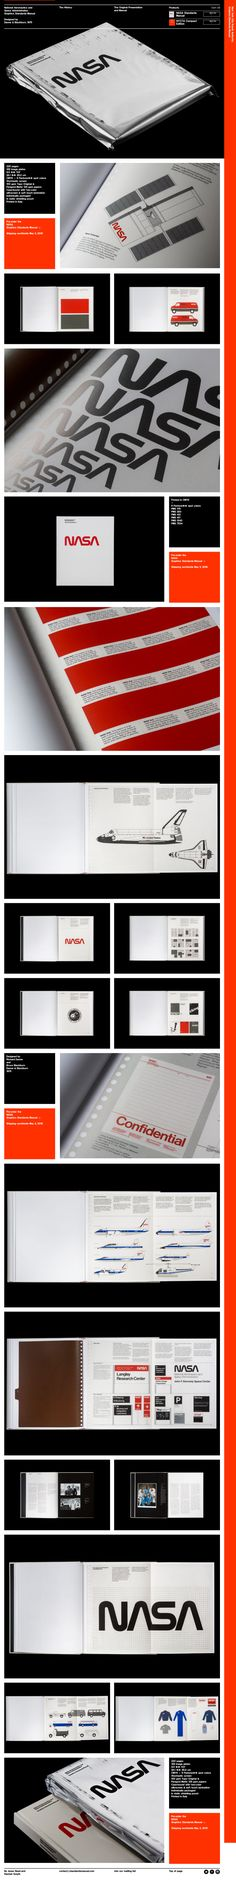 Nasa design manual standardsmanual.com